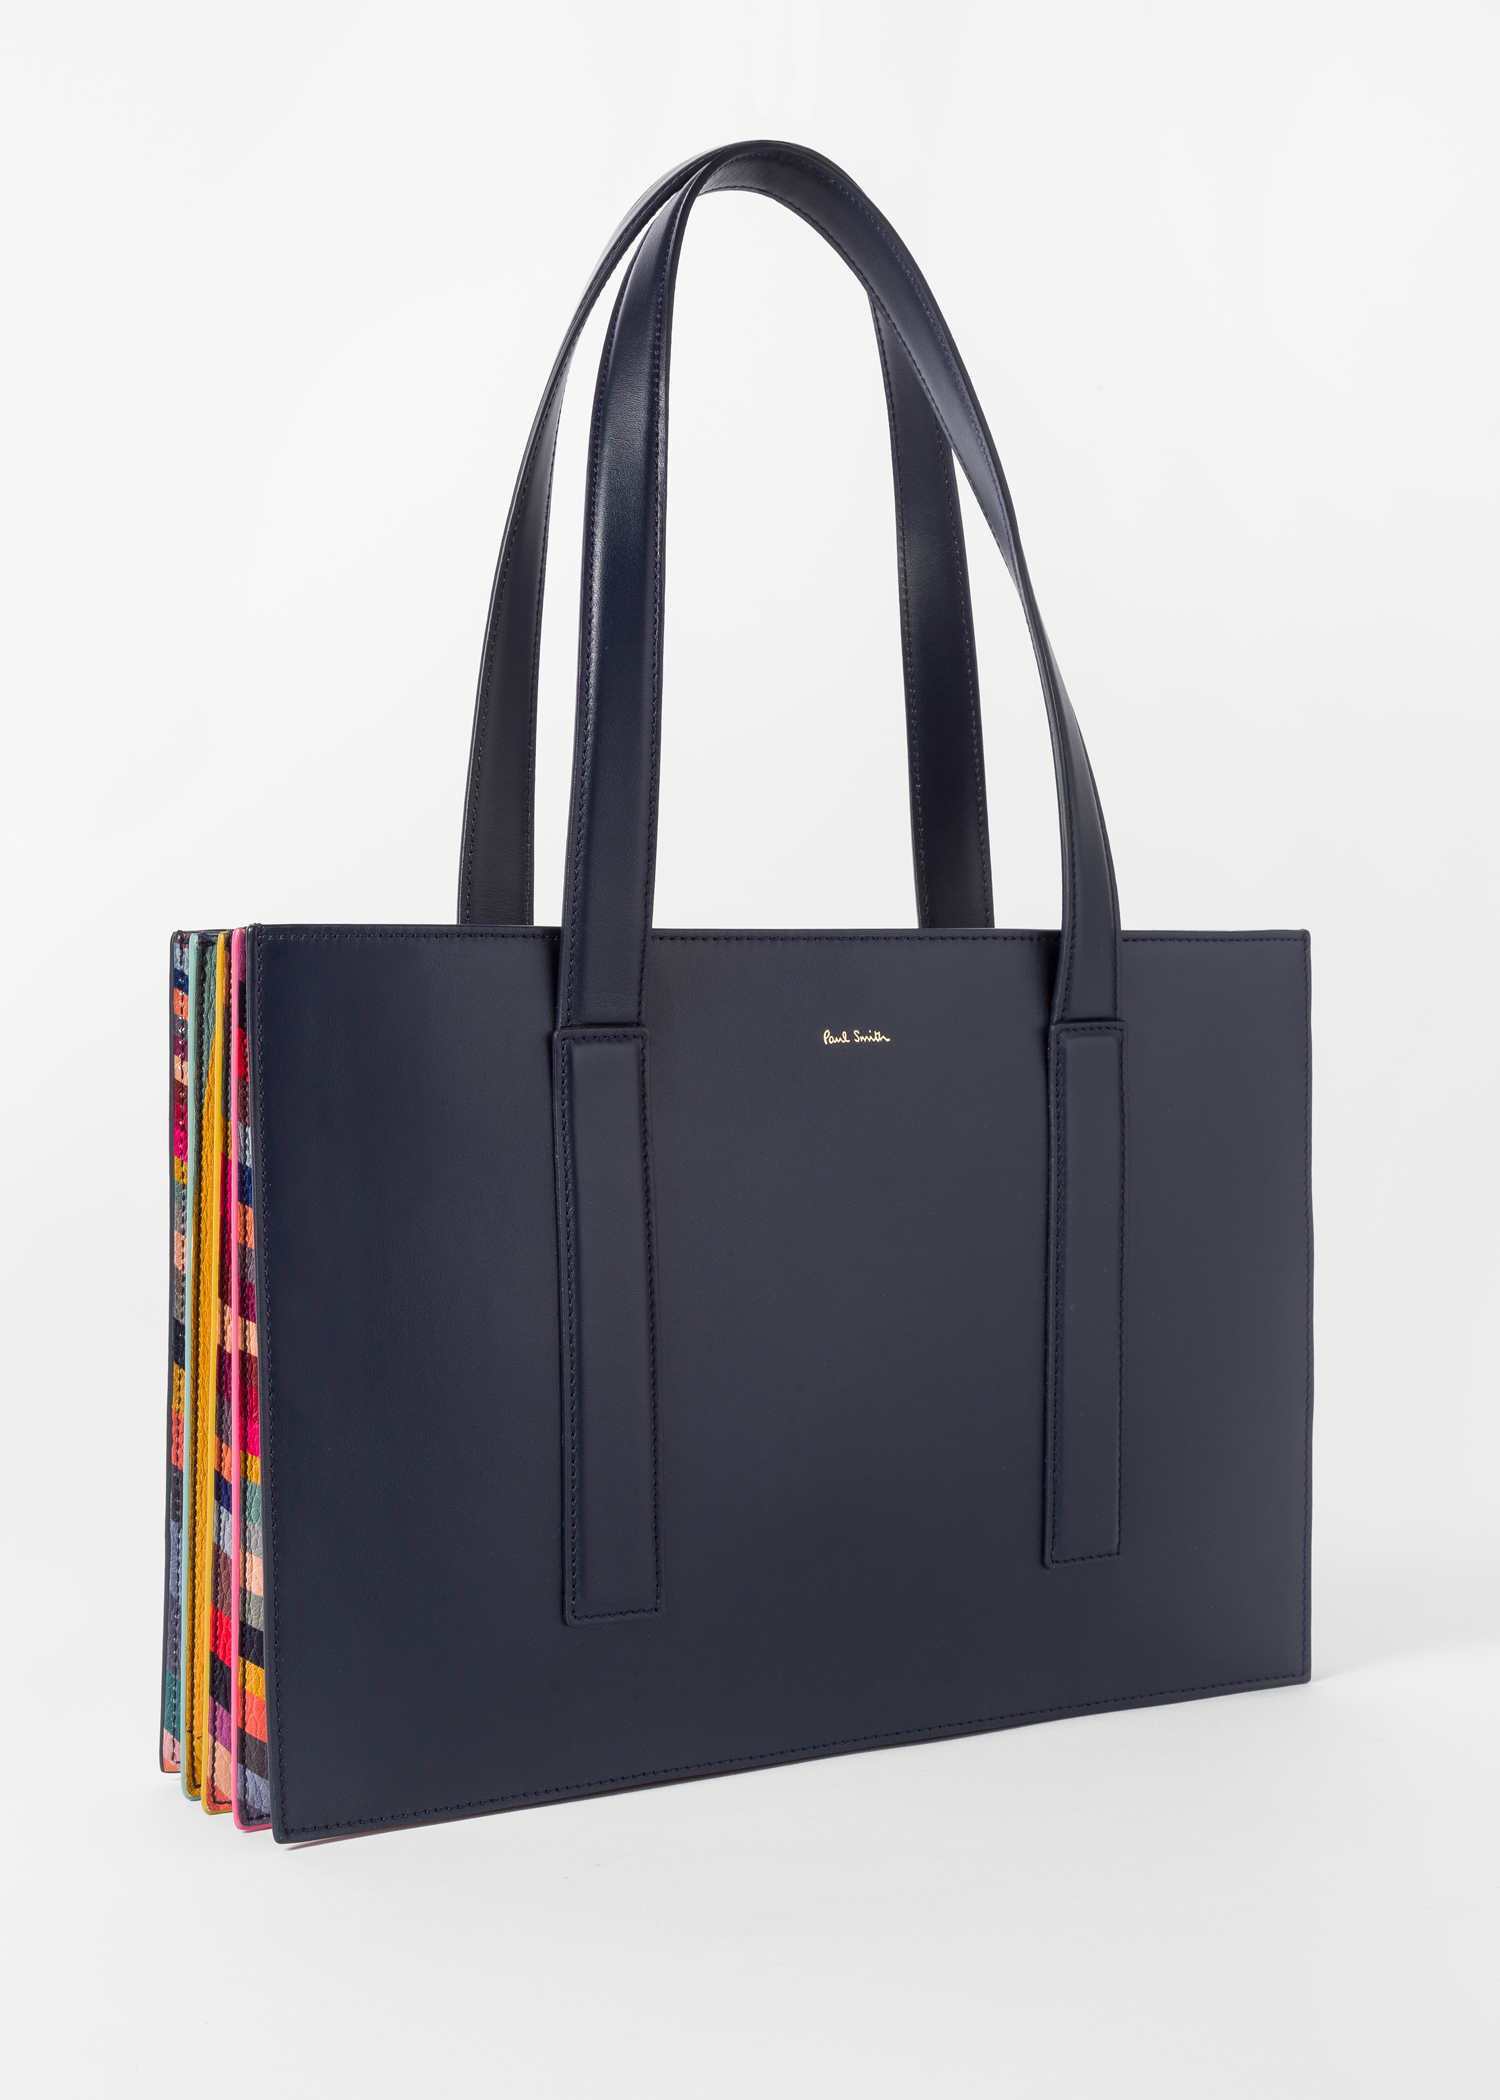 ce6ca3b41 Women's Navy 'Concertina Swirl' Small Leather Tote Bag - Paul Smith